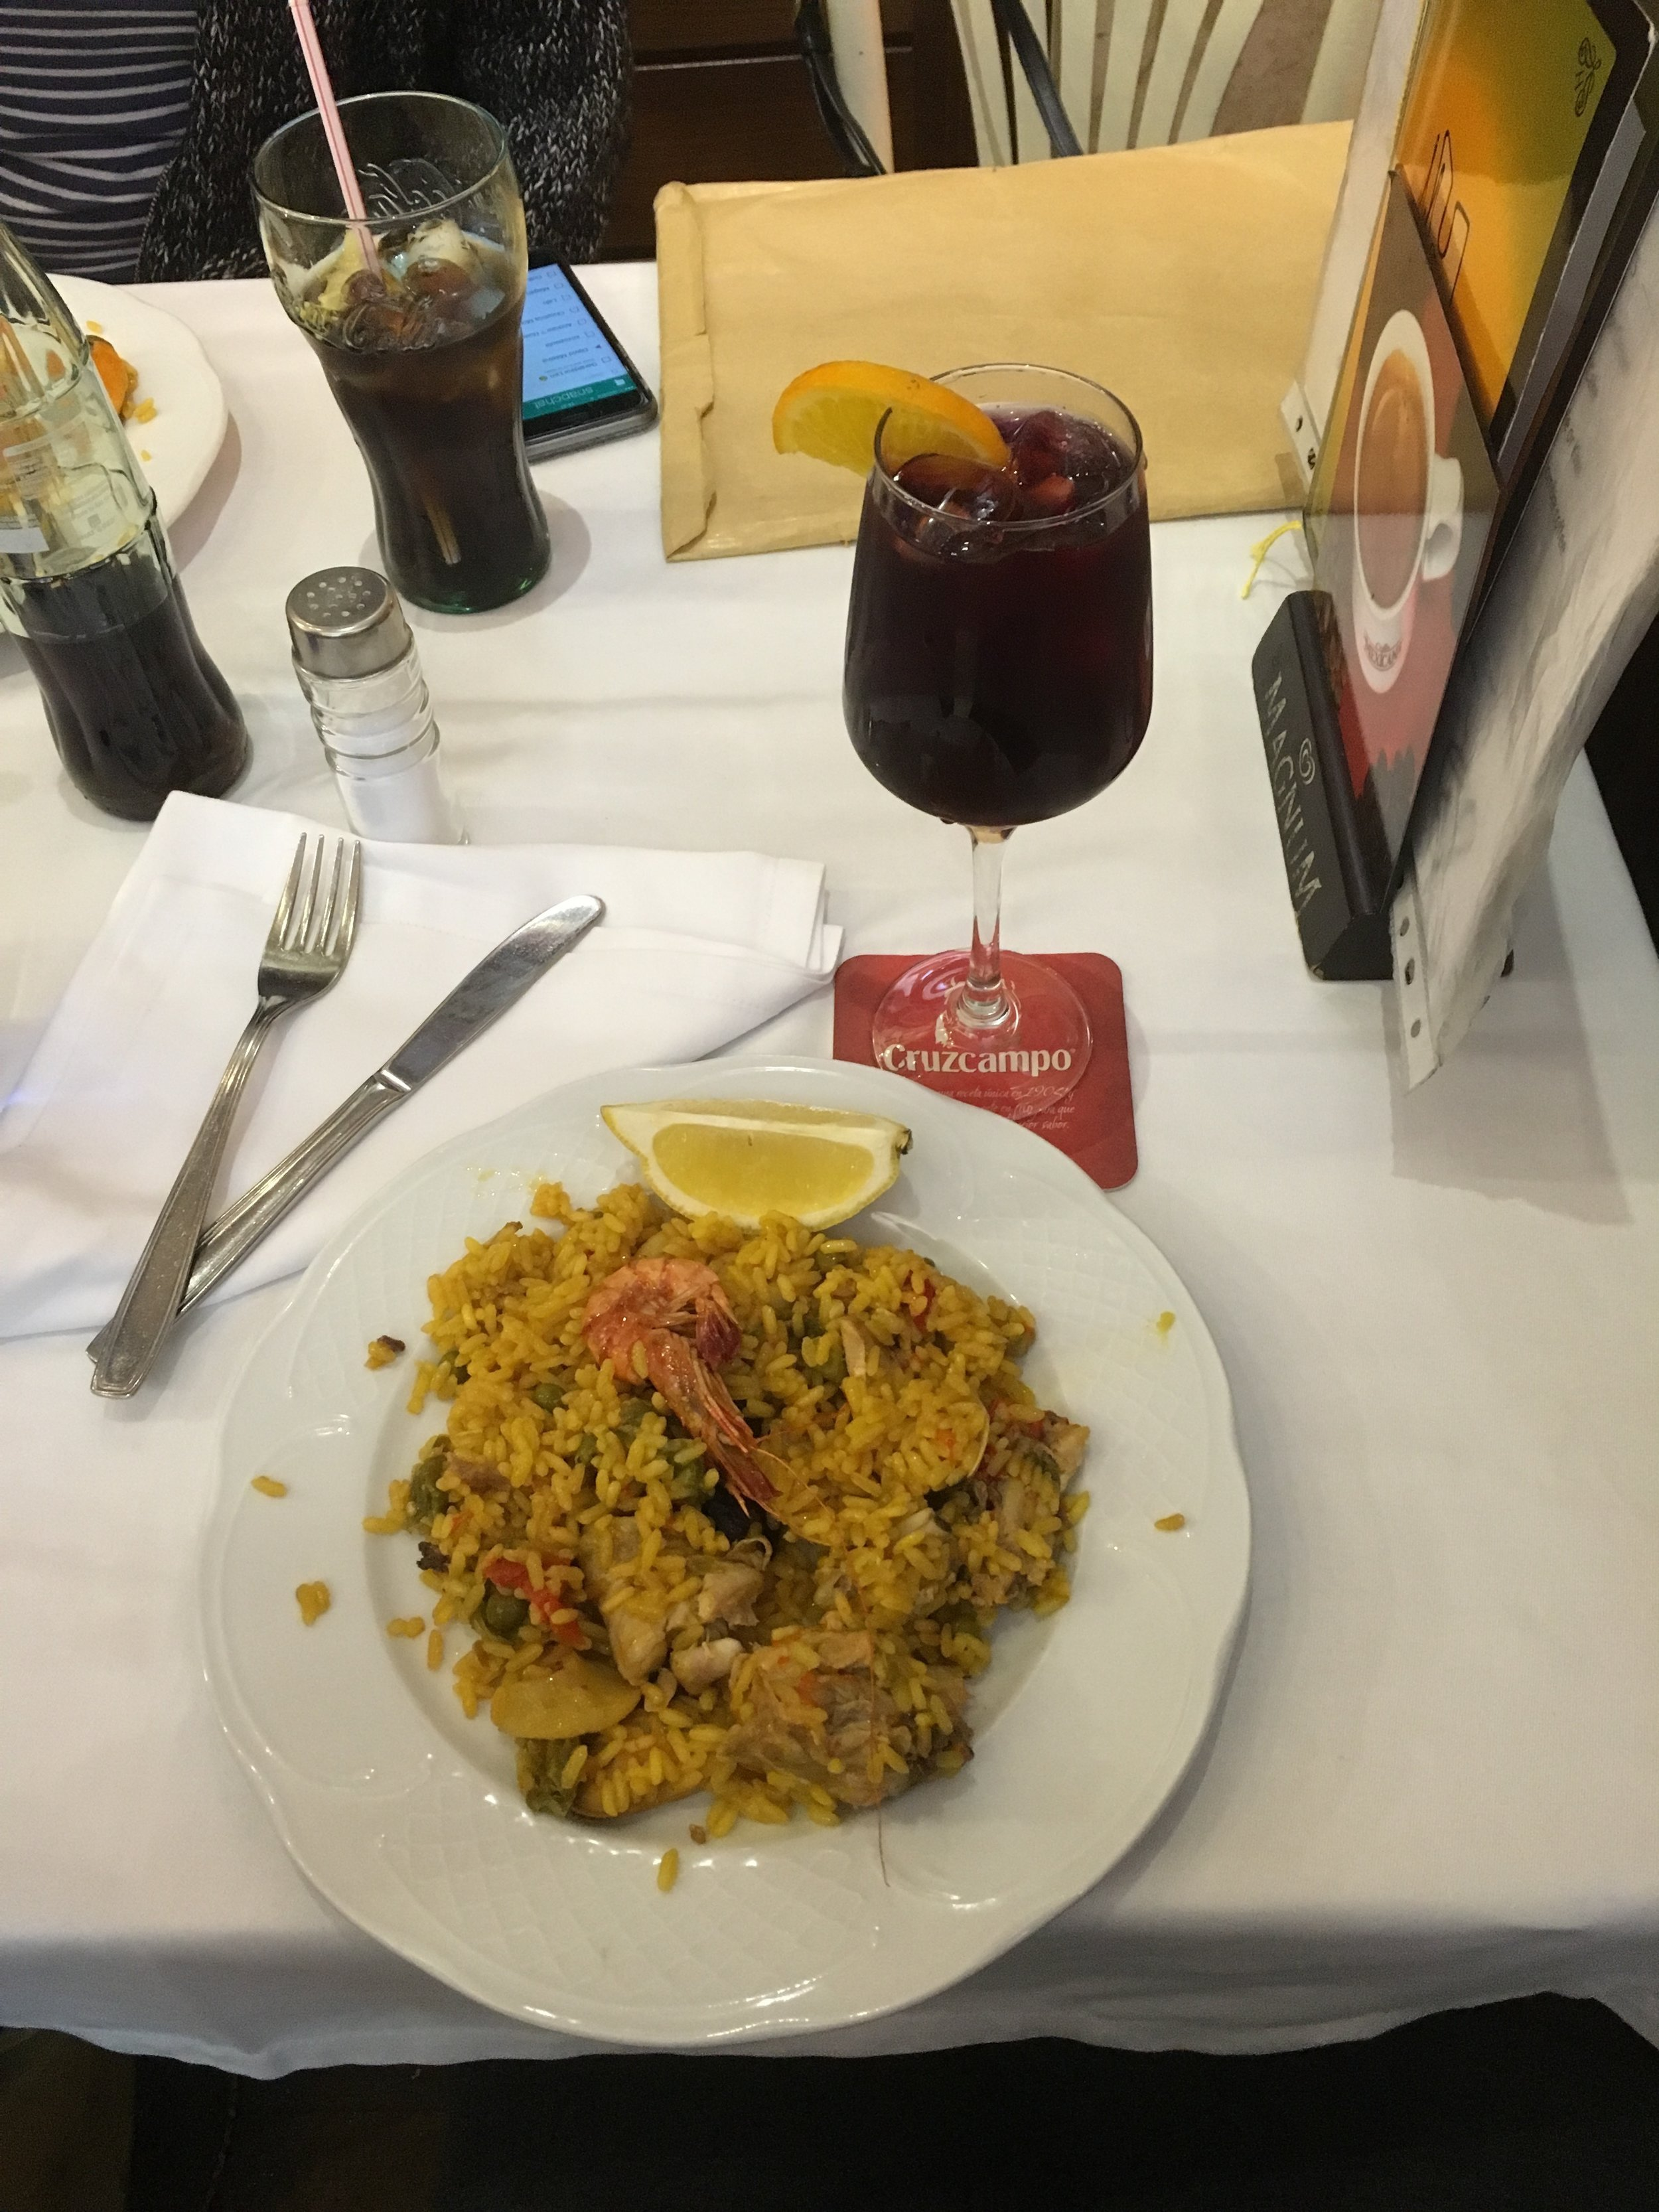 Made a rookie move on my first day in Madrid— got Paella at a place that advertised with pictures and had a serving for just one person